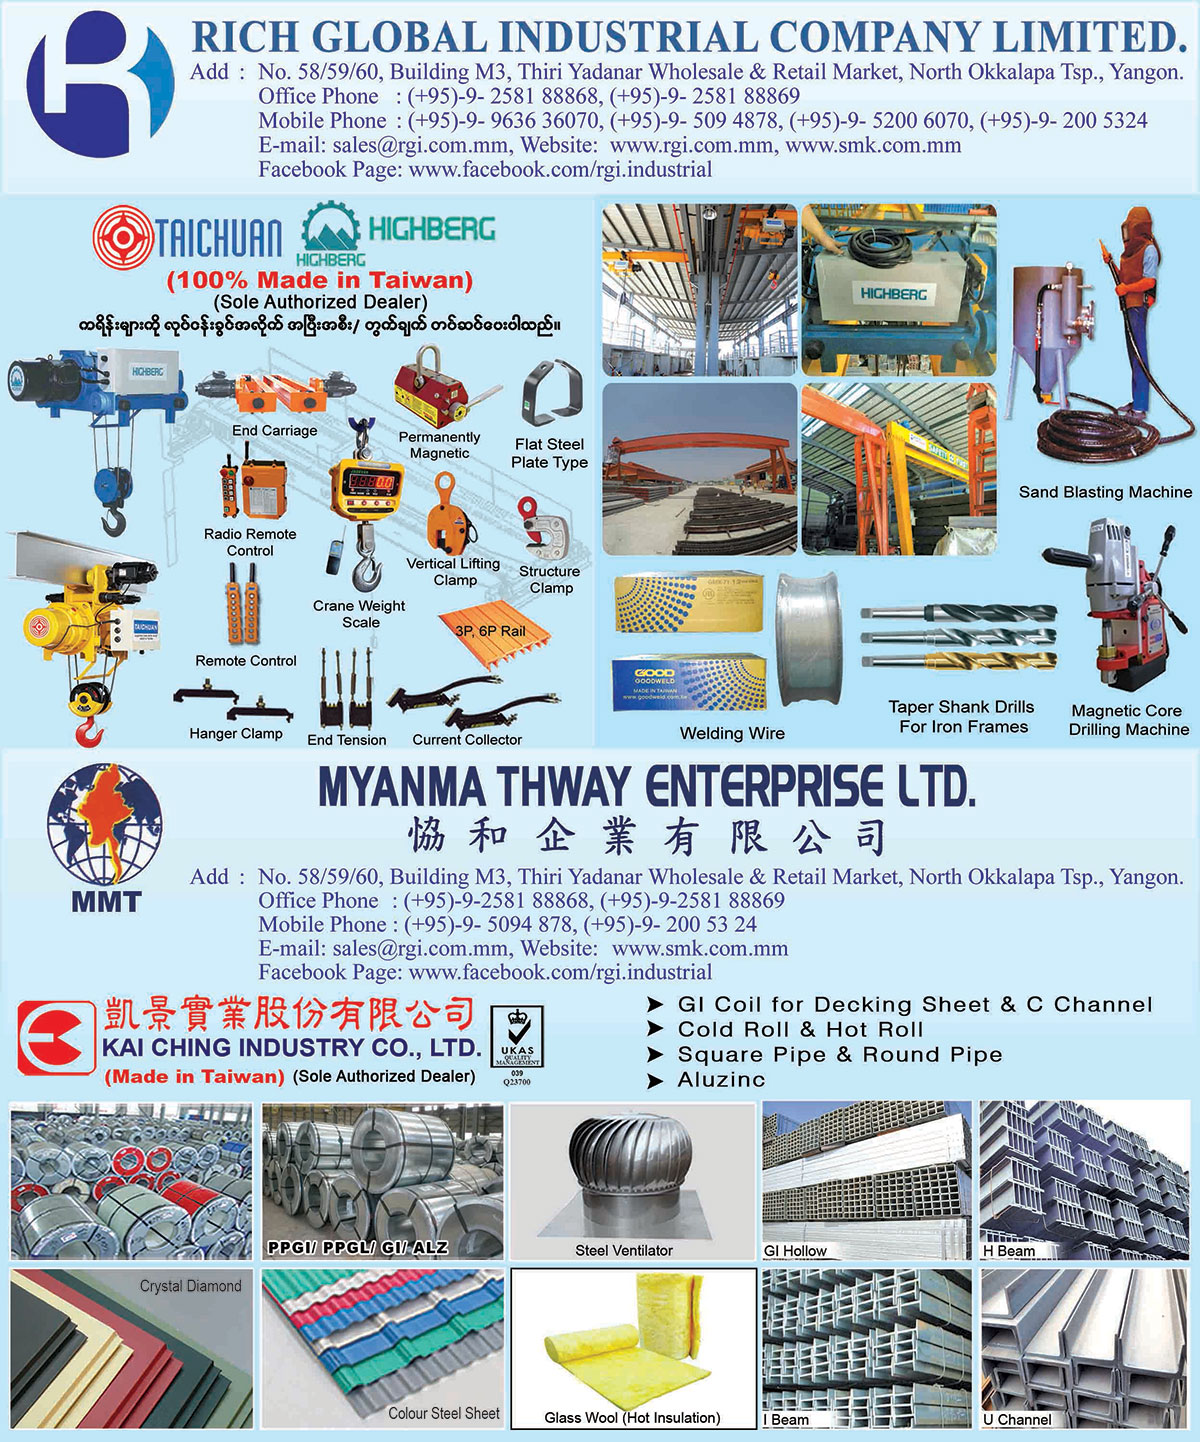 Rich Global Industrial Co., Ltd.Construction & Contractor Equipment & Supplies